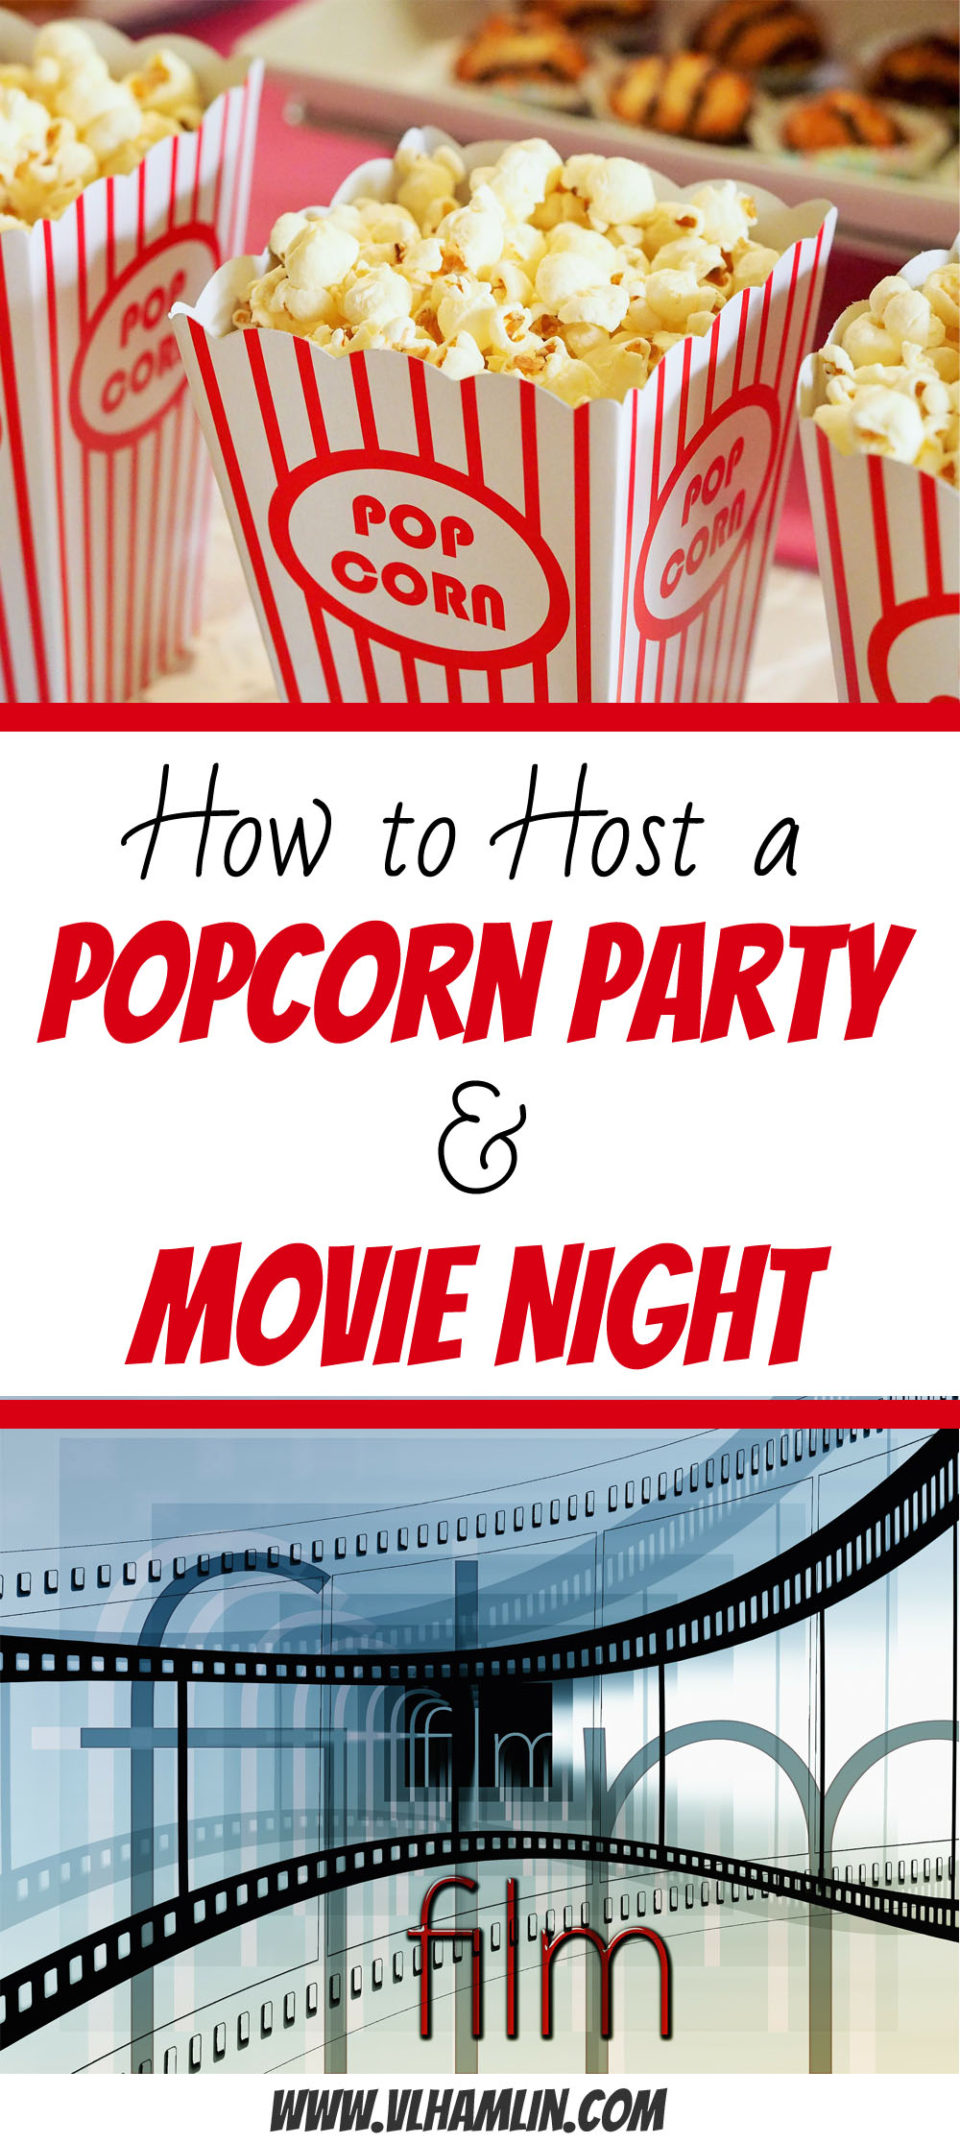 How to Host a Popcorn Party and Movie Night